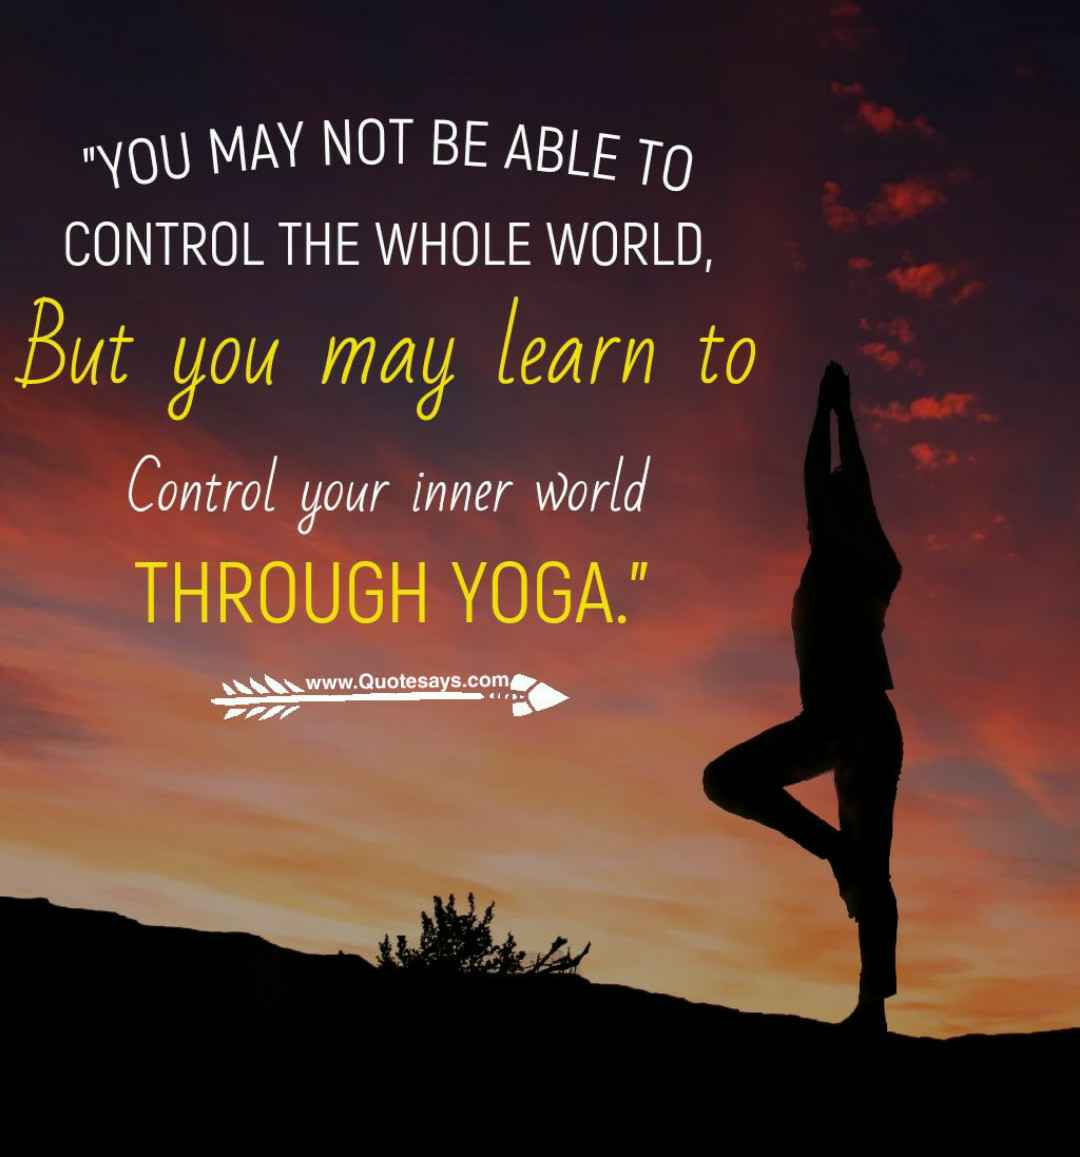 Yoga quotes. Inspirational yoga quotes.